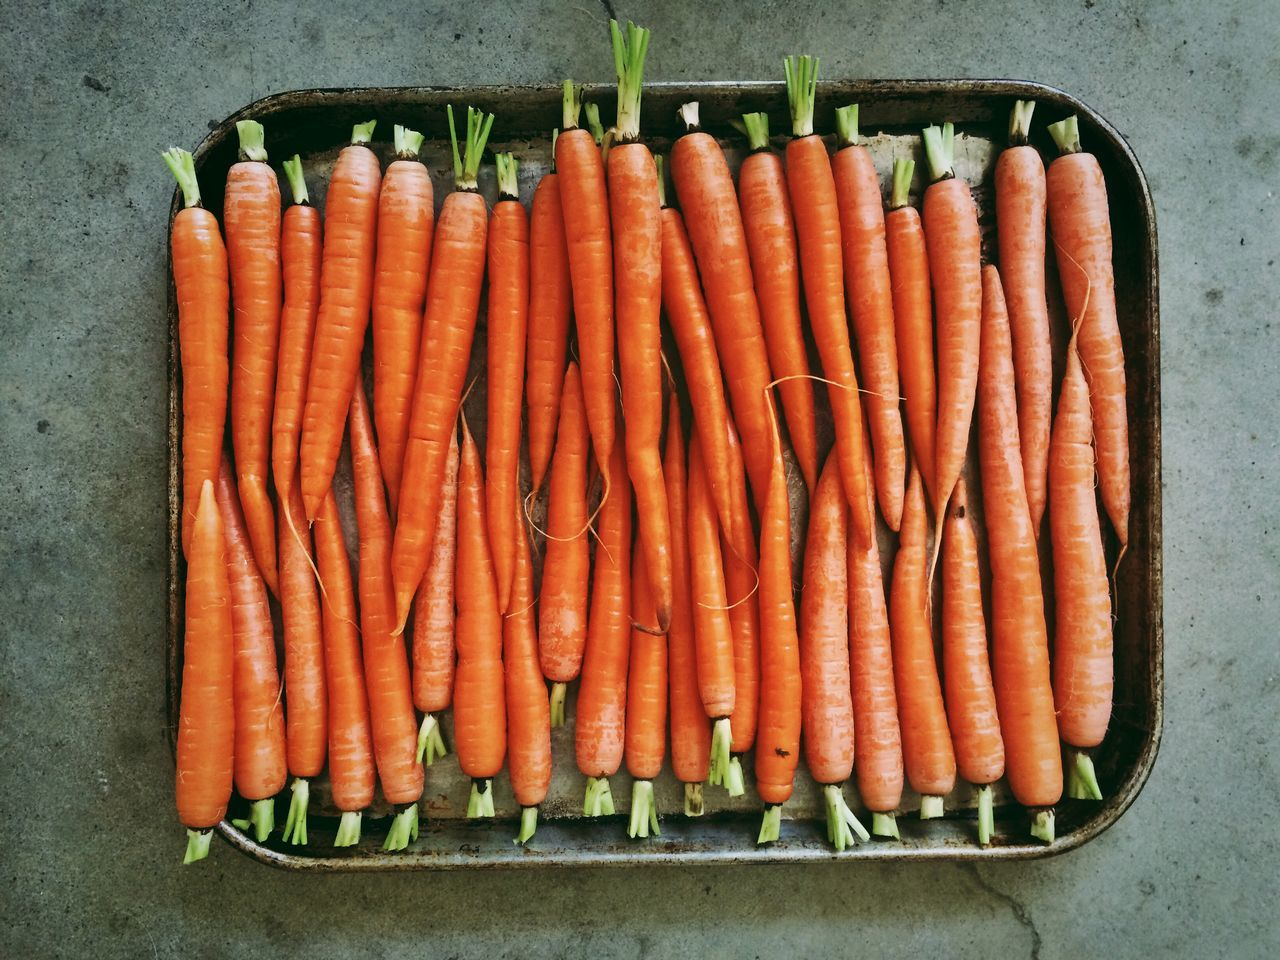 High Angle View Of Fresh Carrots In A Tray